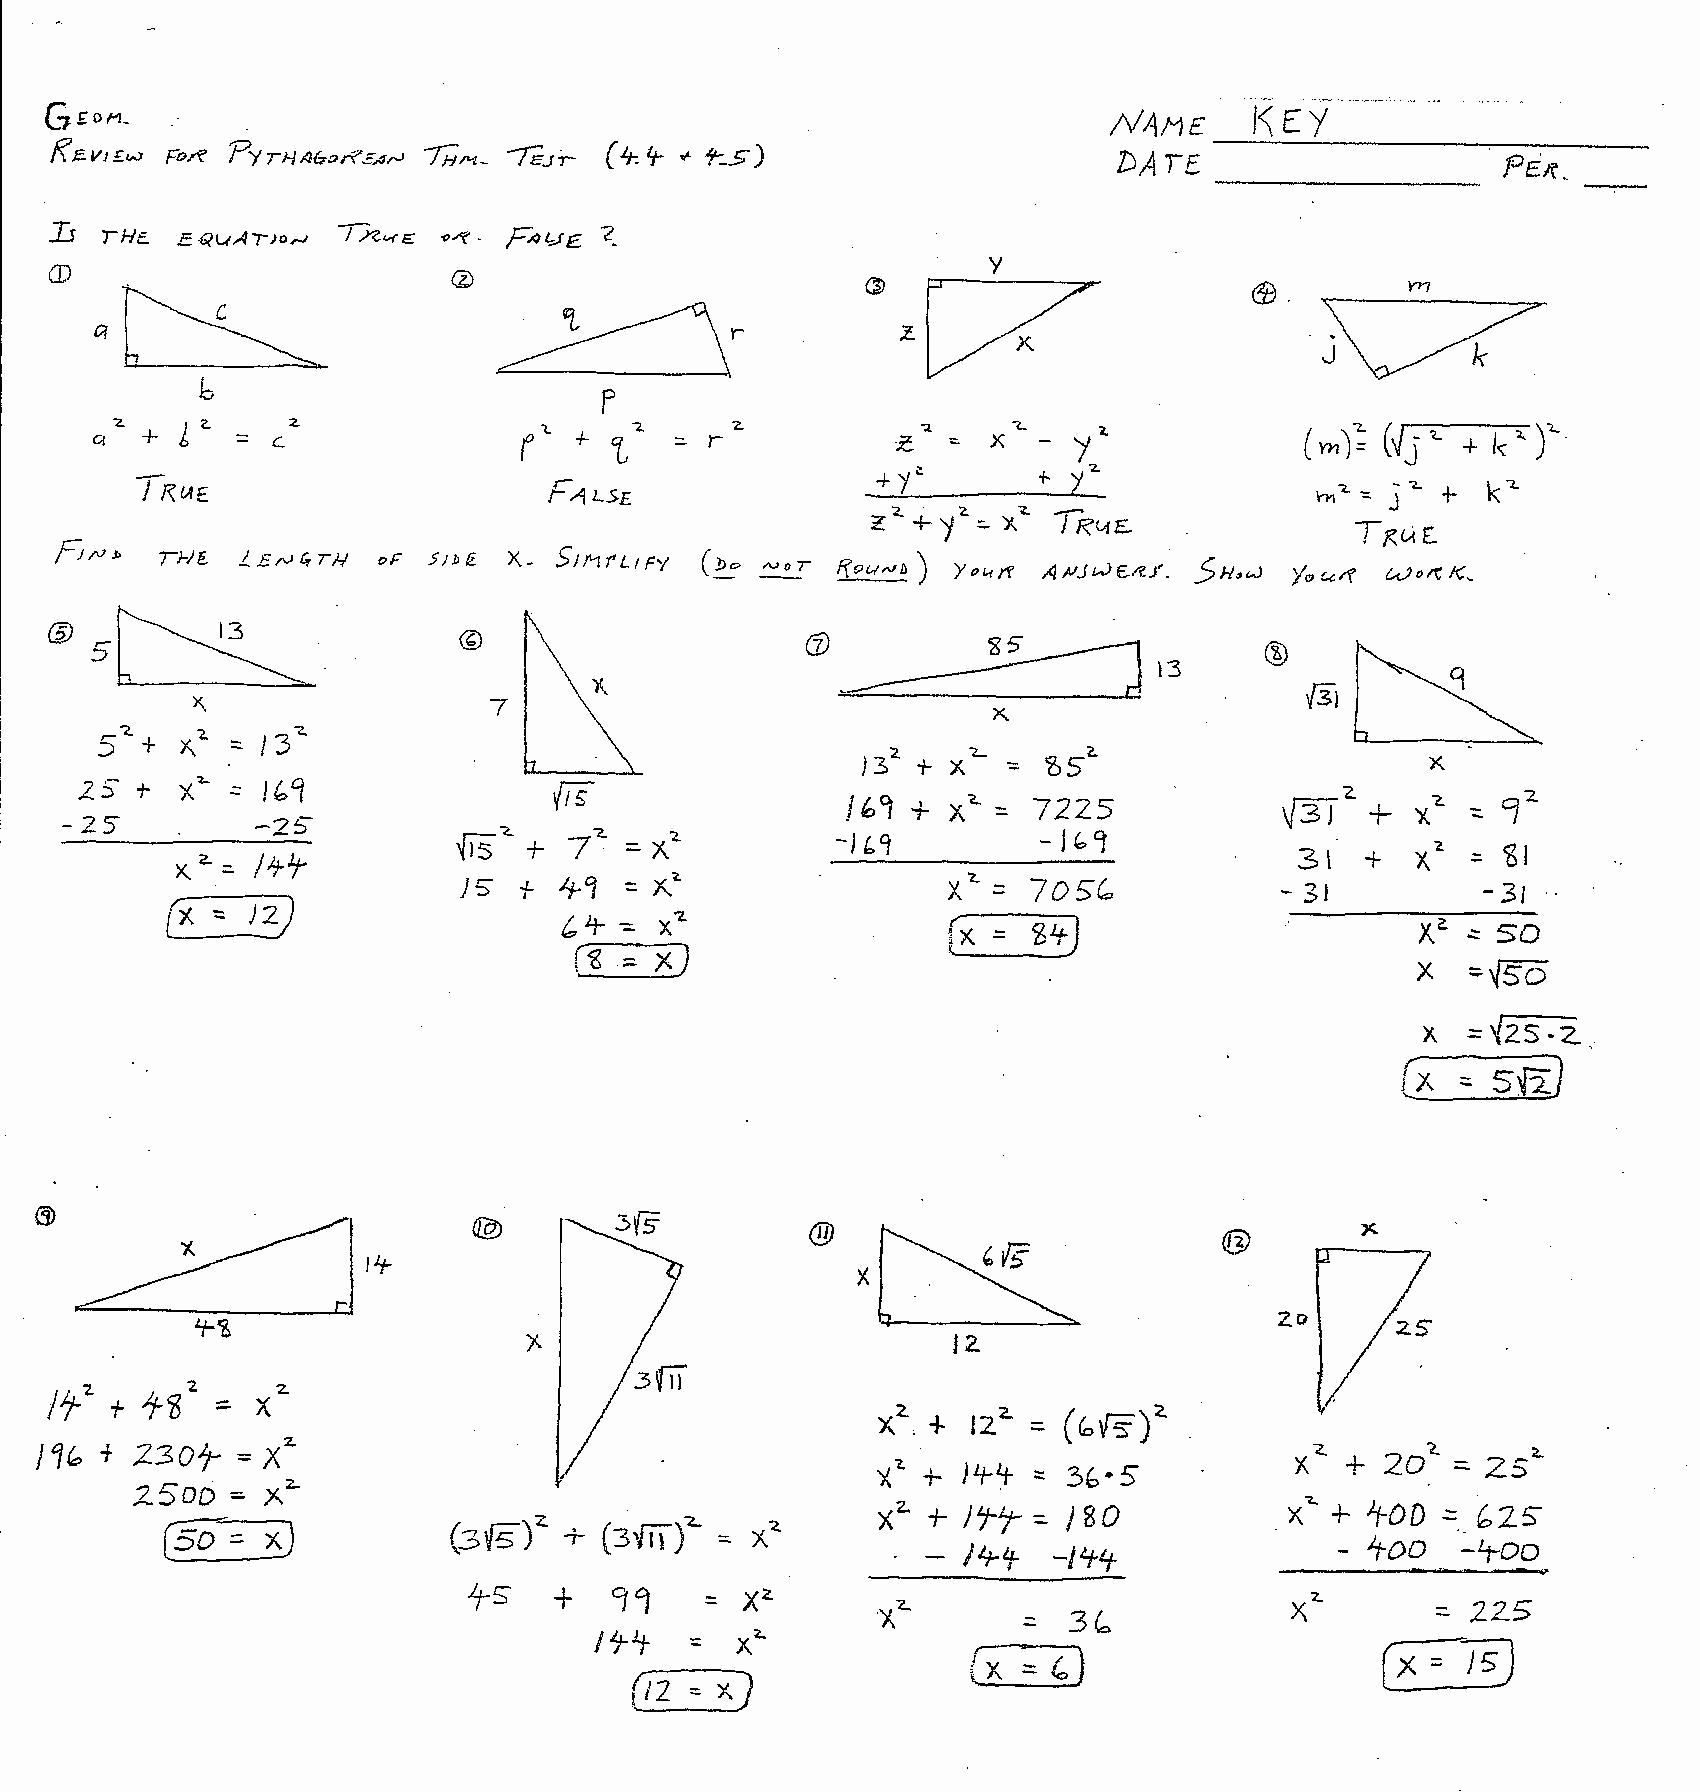 medium resolution of Identifying Congruent Triangles Worksheet   Printable Worksheets and  Activities for Teachers